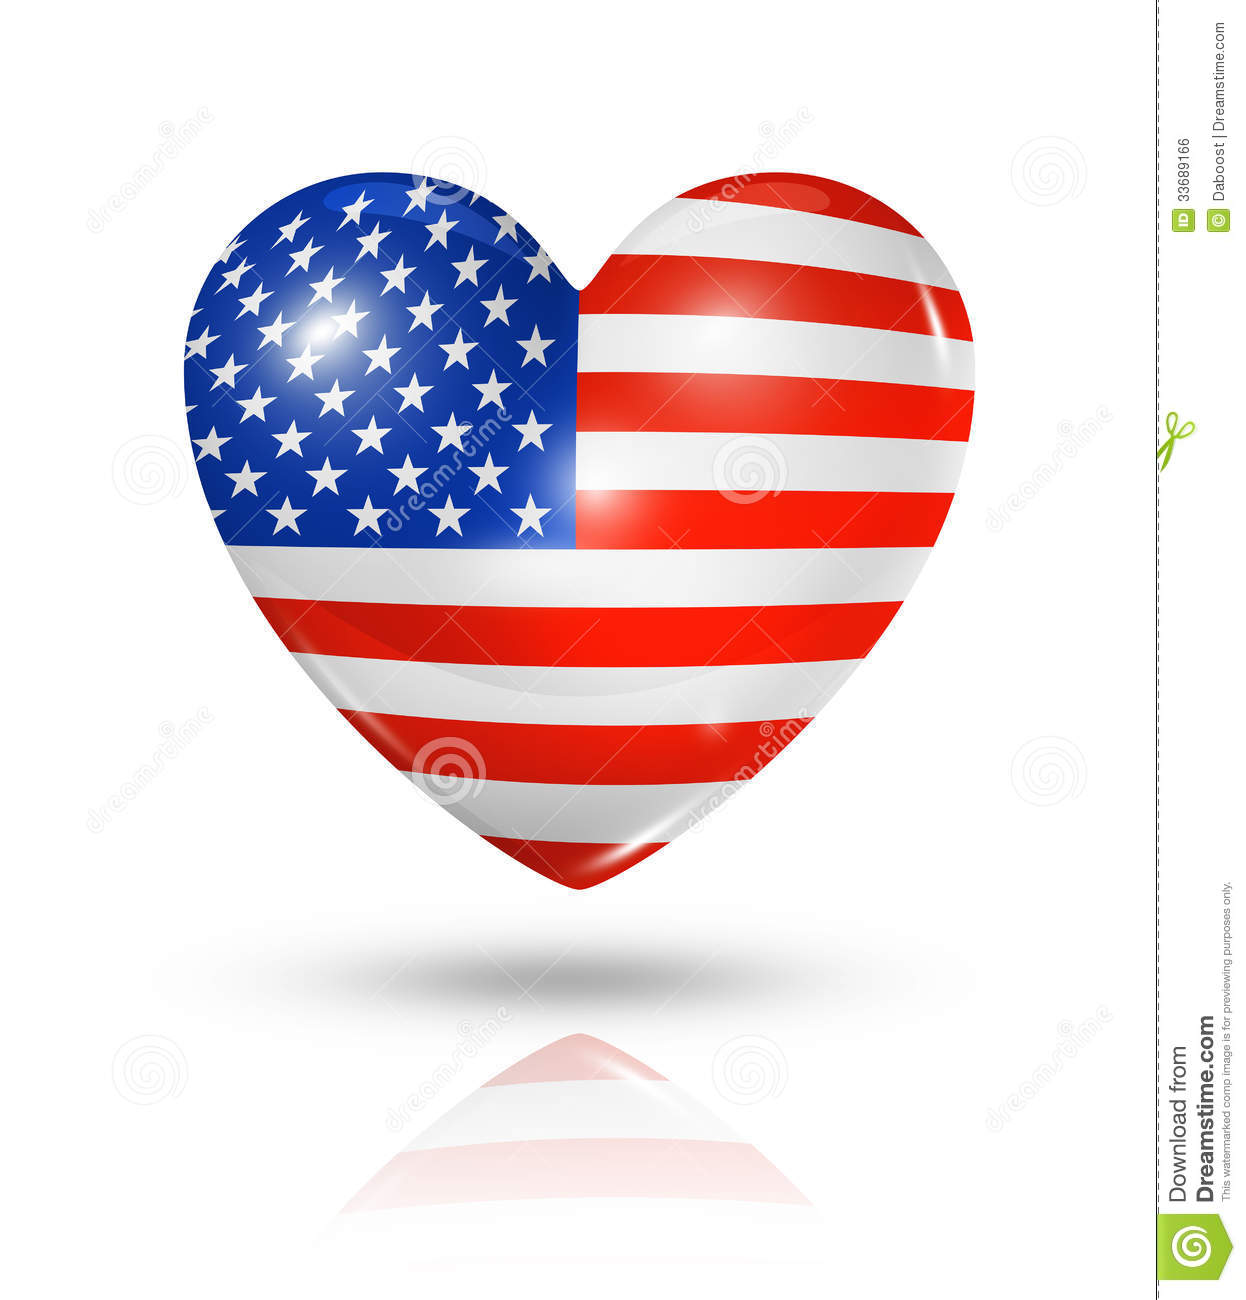 love usa heart flag icon stock illustration image of heart 33689166. Black Bedroom Furniture Sets. Home Design Ideas